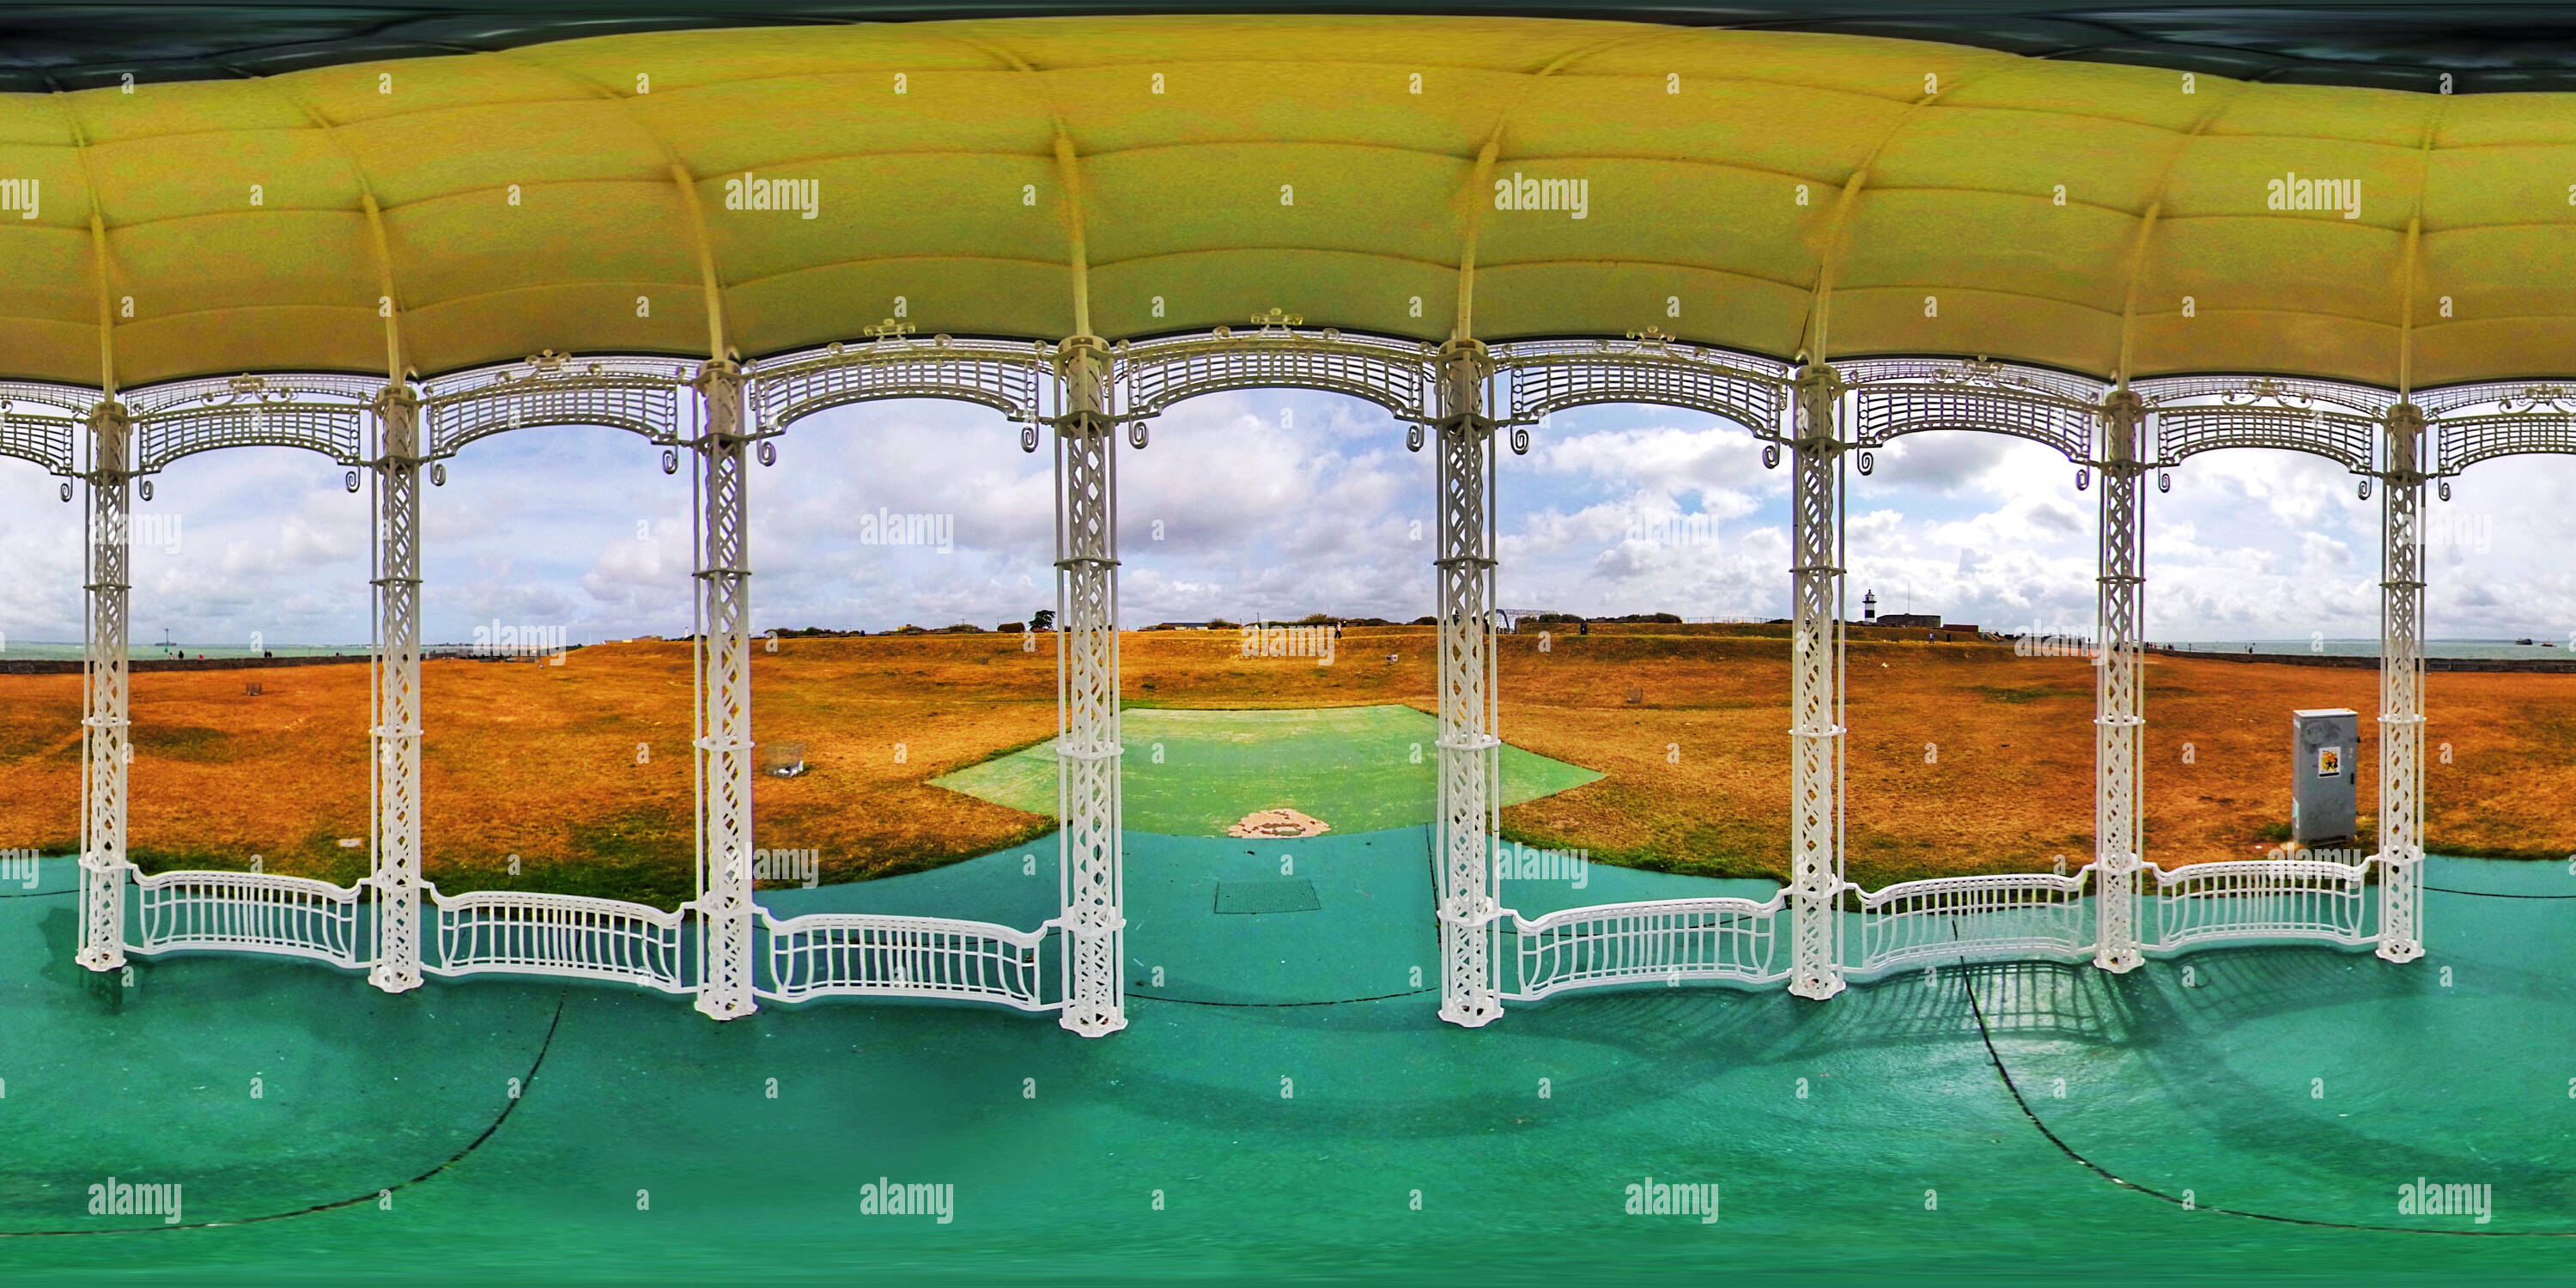 360 degree panoramic view of Historic traditional Bandstand on the seafront in Southsea, Hampshire, Portsmouth, United Kingdom (360VR)